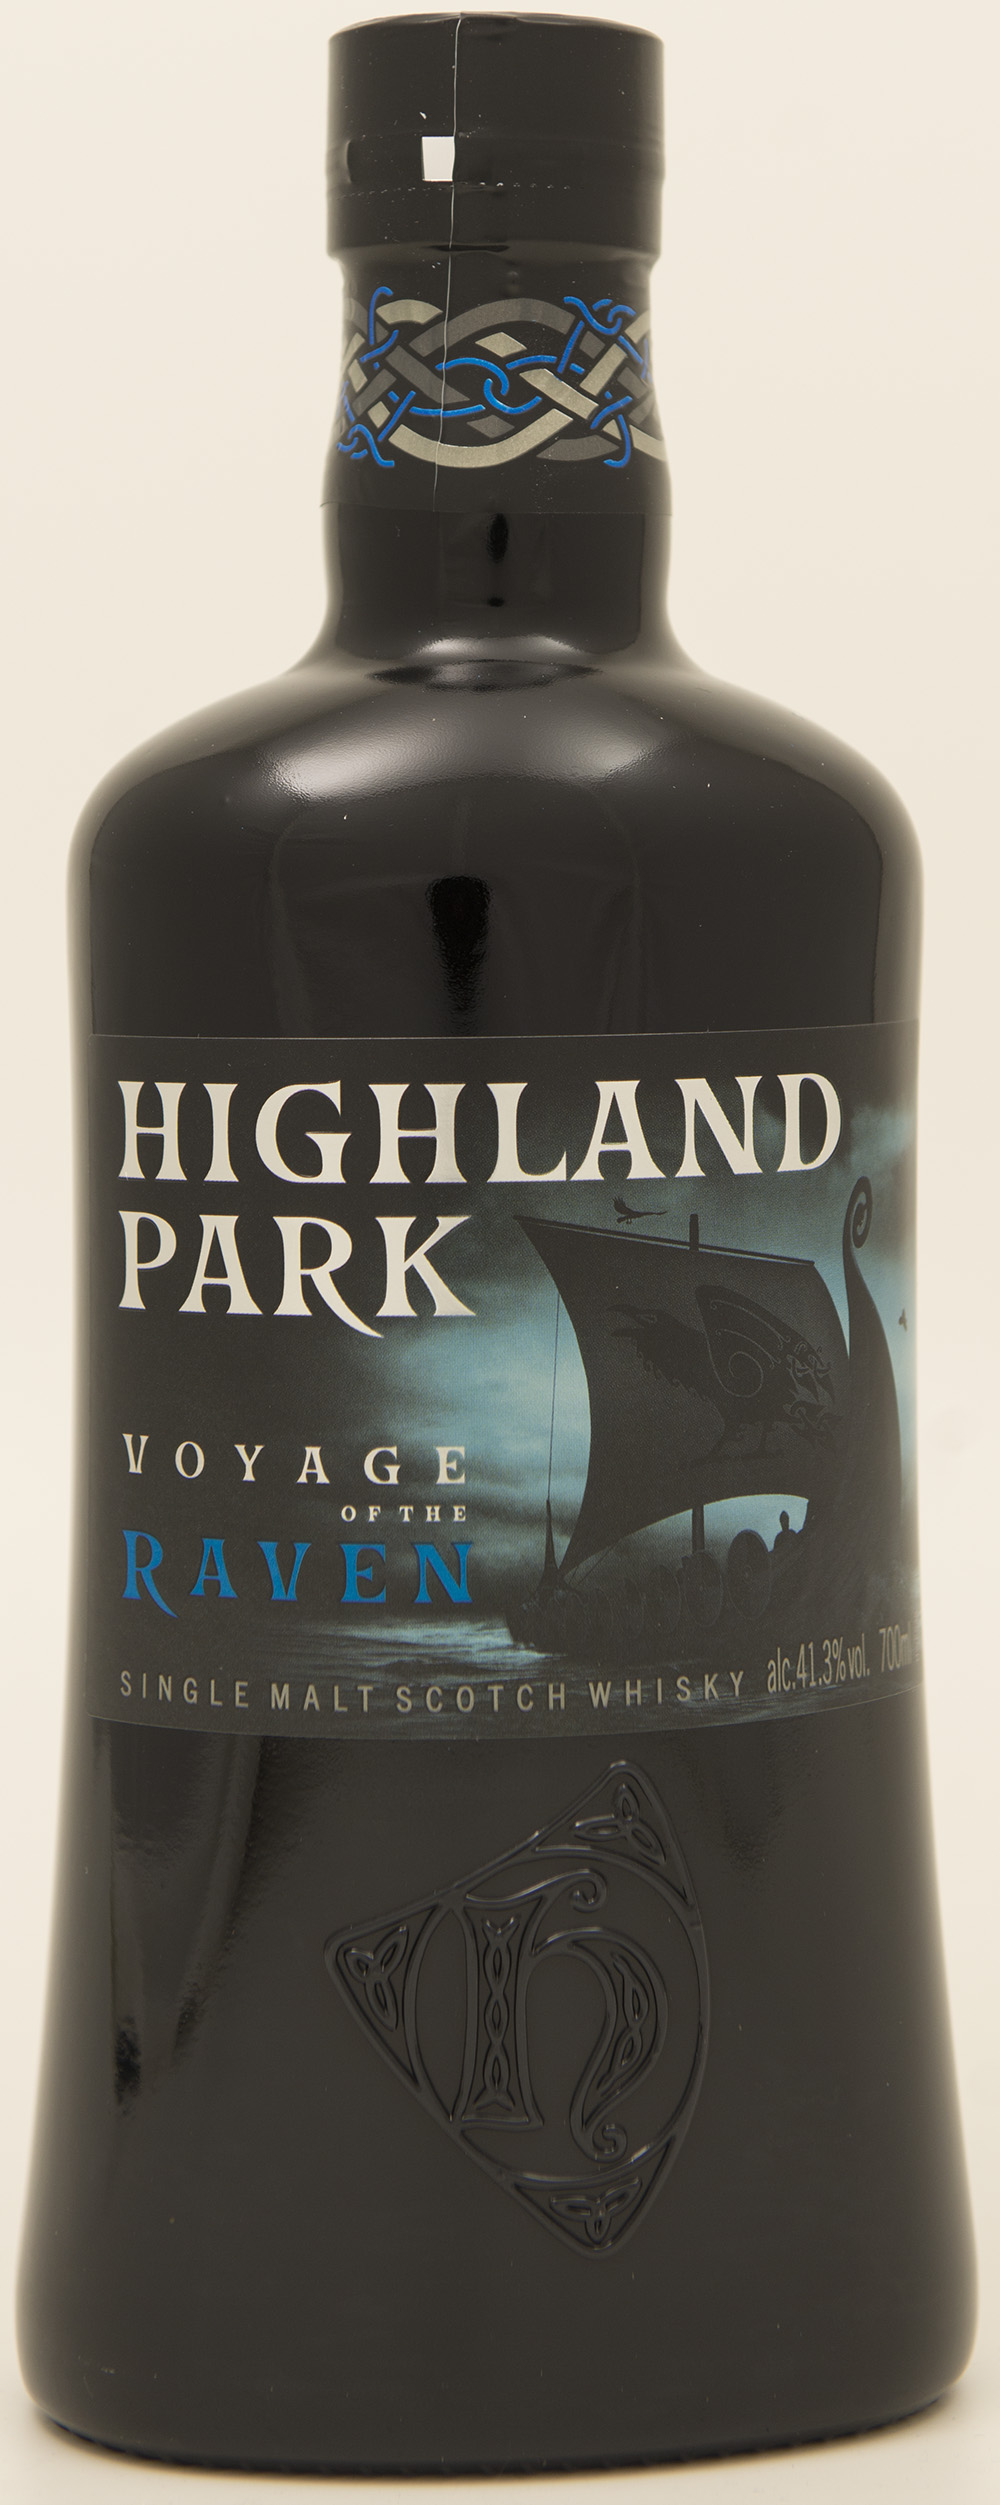 Billede: DSC_3710 - Highland Park - Vouage of the Raven (bottle front).jpg